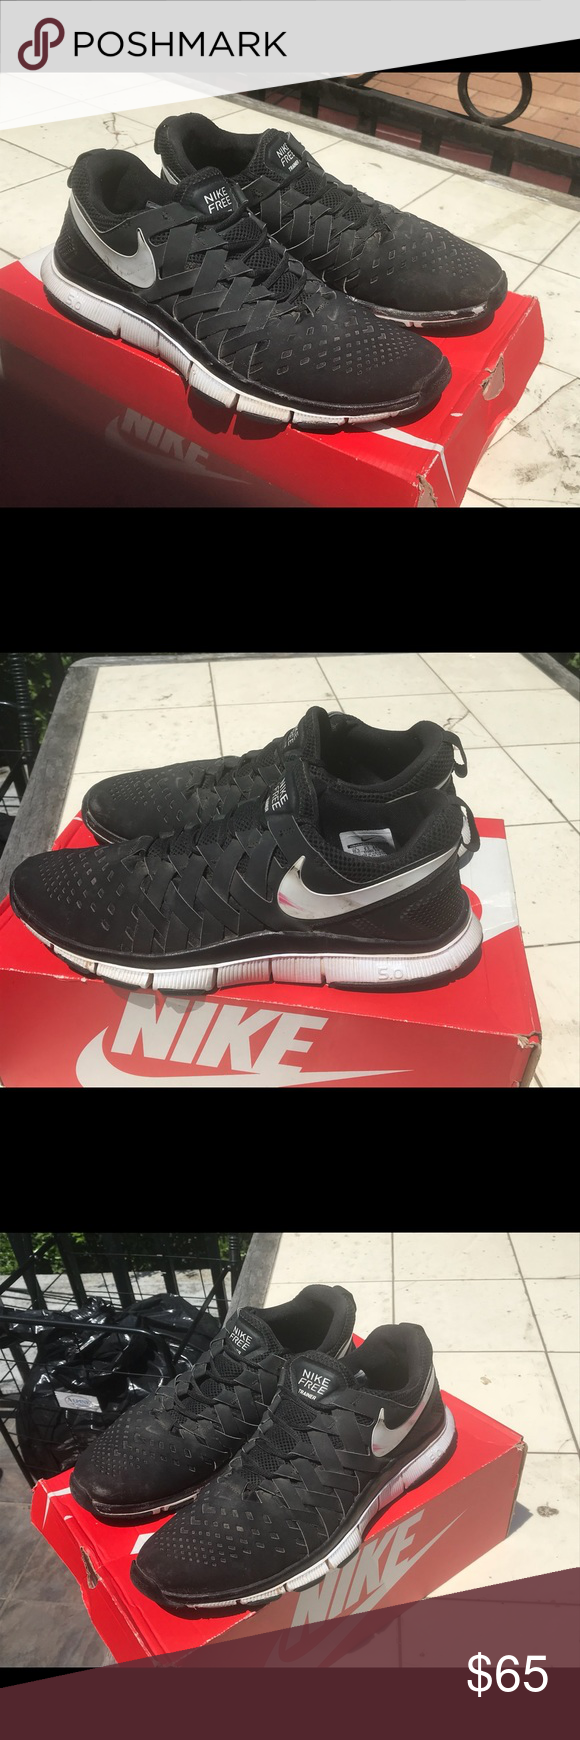 64a1eec5e2ca Nike Free Trainer 5.0 Fingertrap Black Size 10 1 2. Great condition. Ships  within 24 hours. Nike Shoes Sneakers